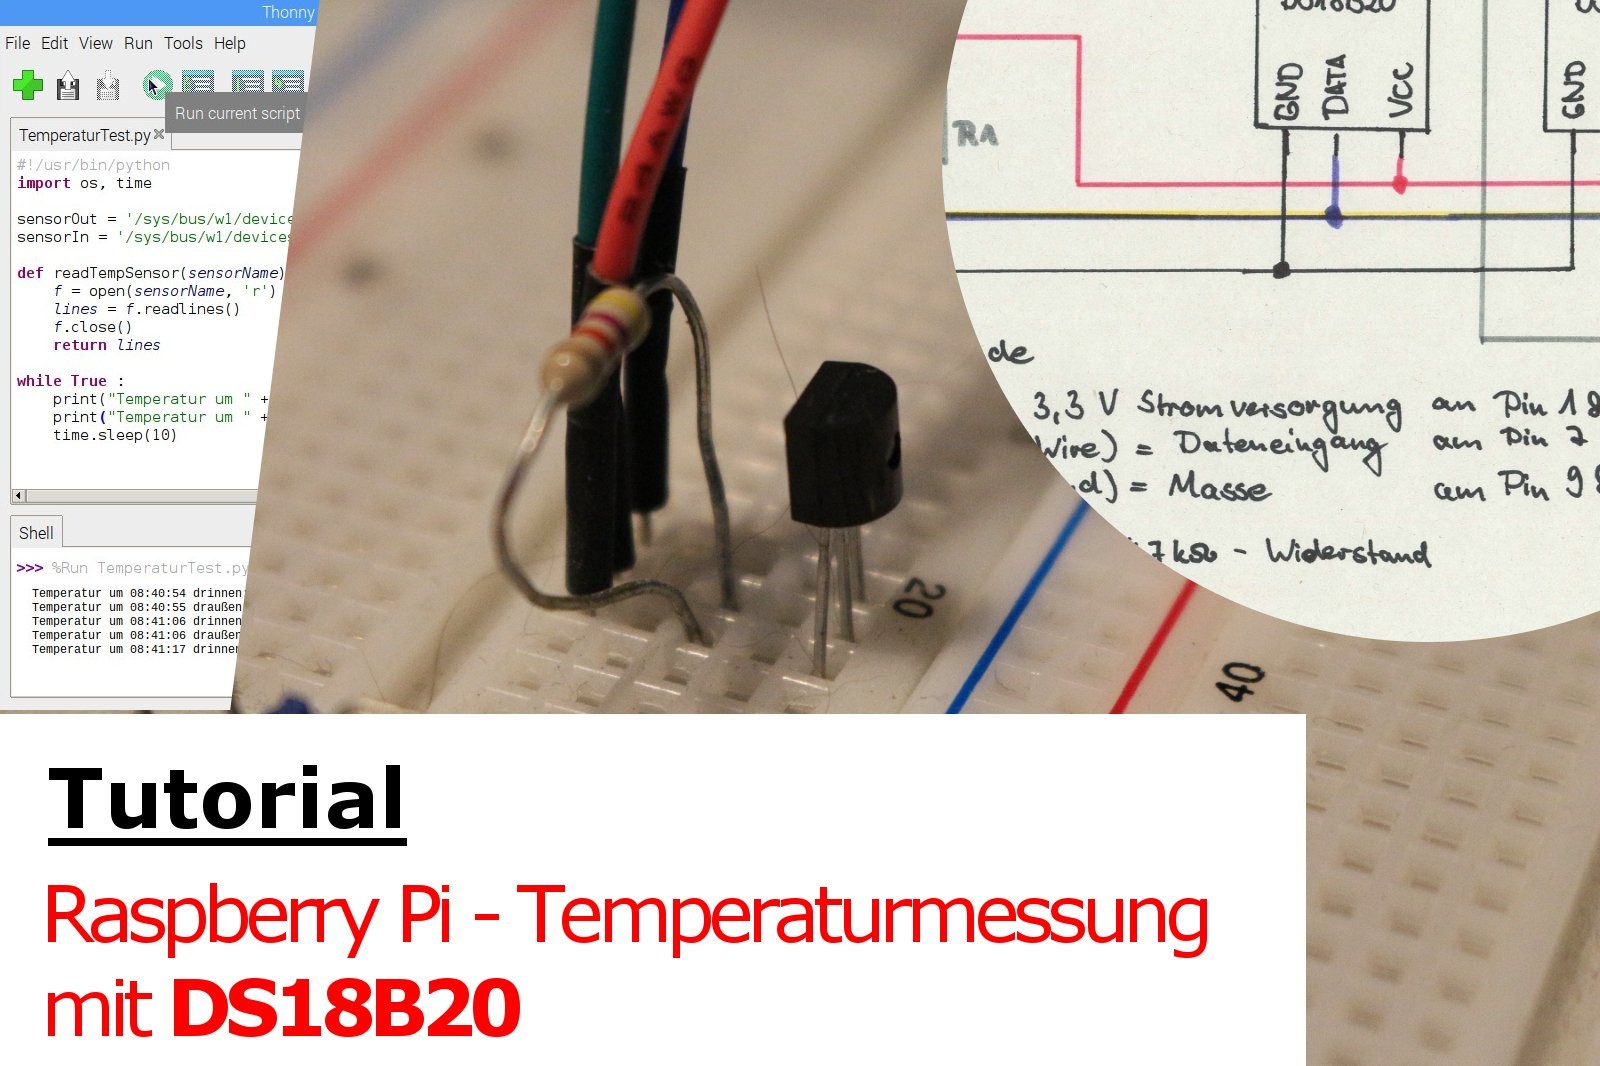 Tutorial: Raspberry Pi - Temperaturmessung mit DS18B20